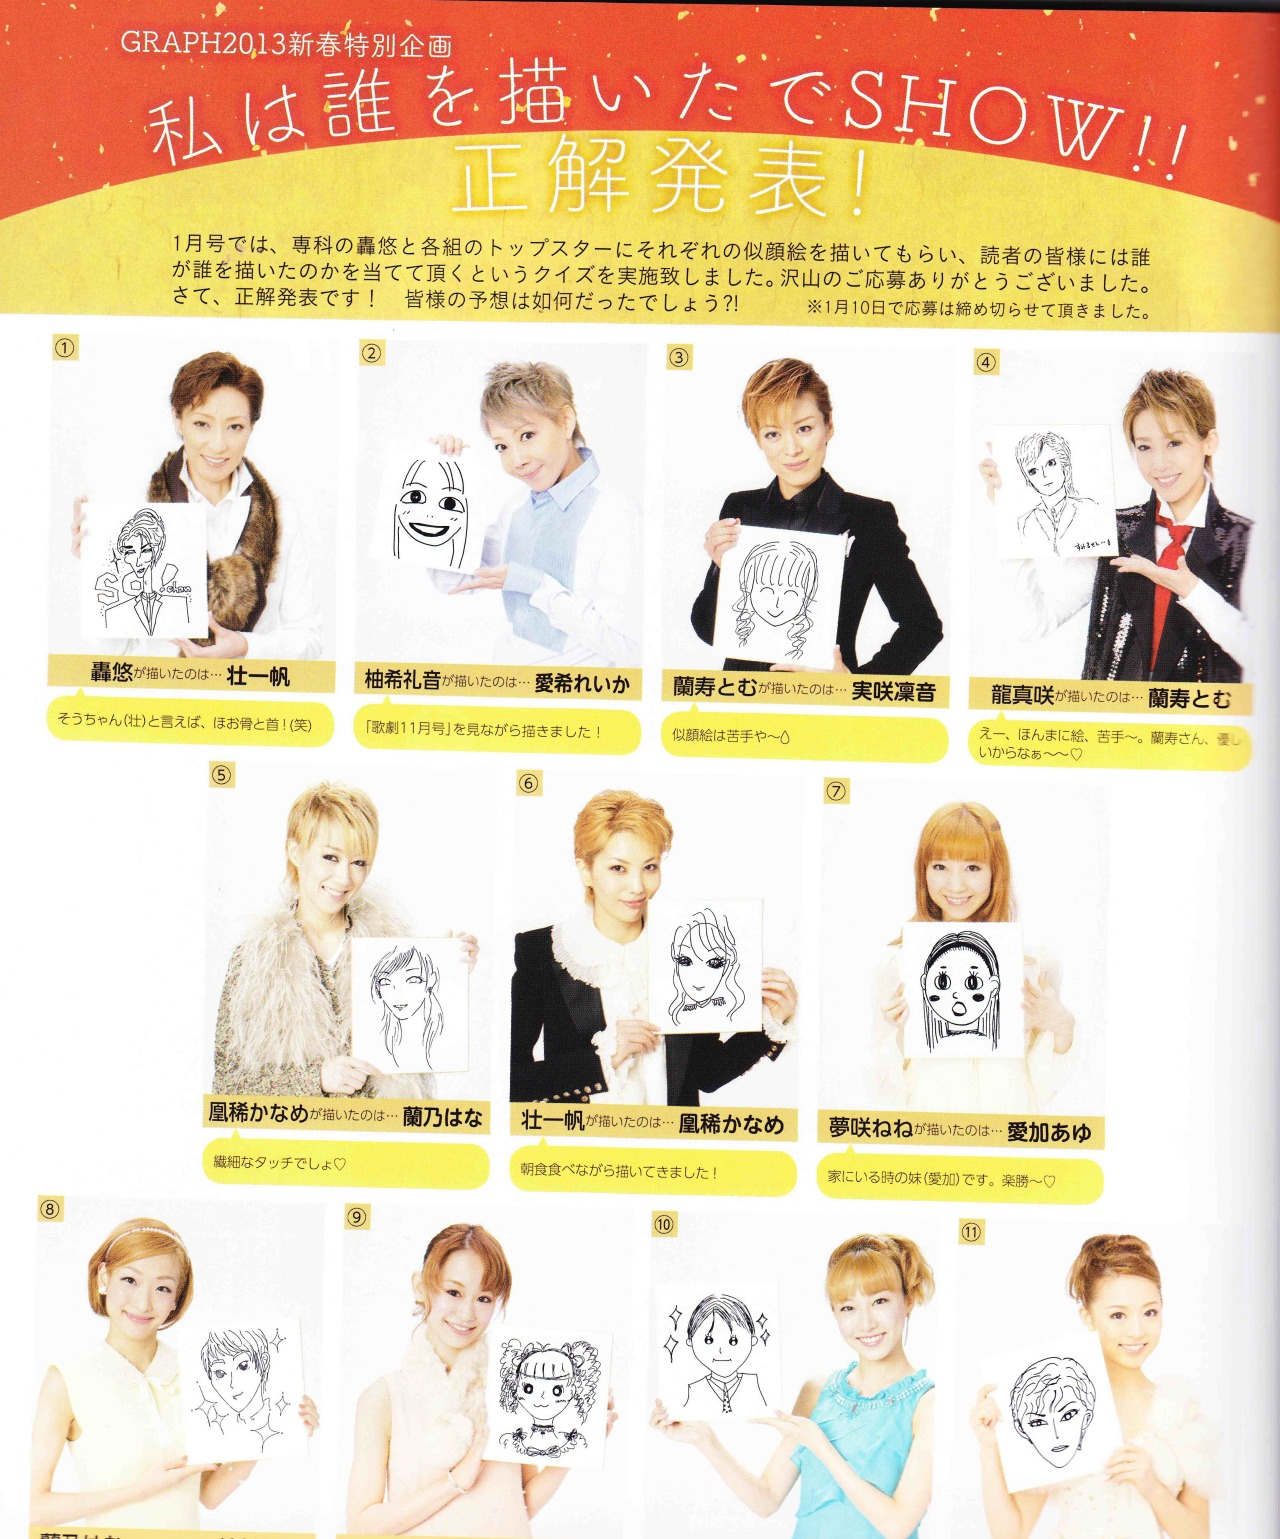 teru-rika-love:  The answers to the drawings that the top stars did for the new years game. I thought people would want to see it. did anyone guess their drawings right?  Teru's drawing is wow. :)